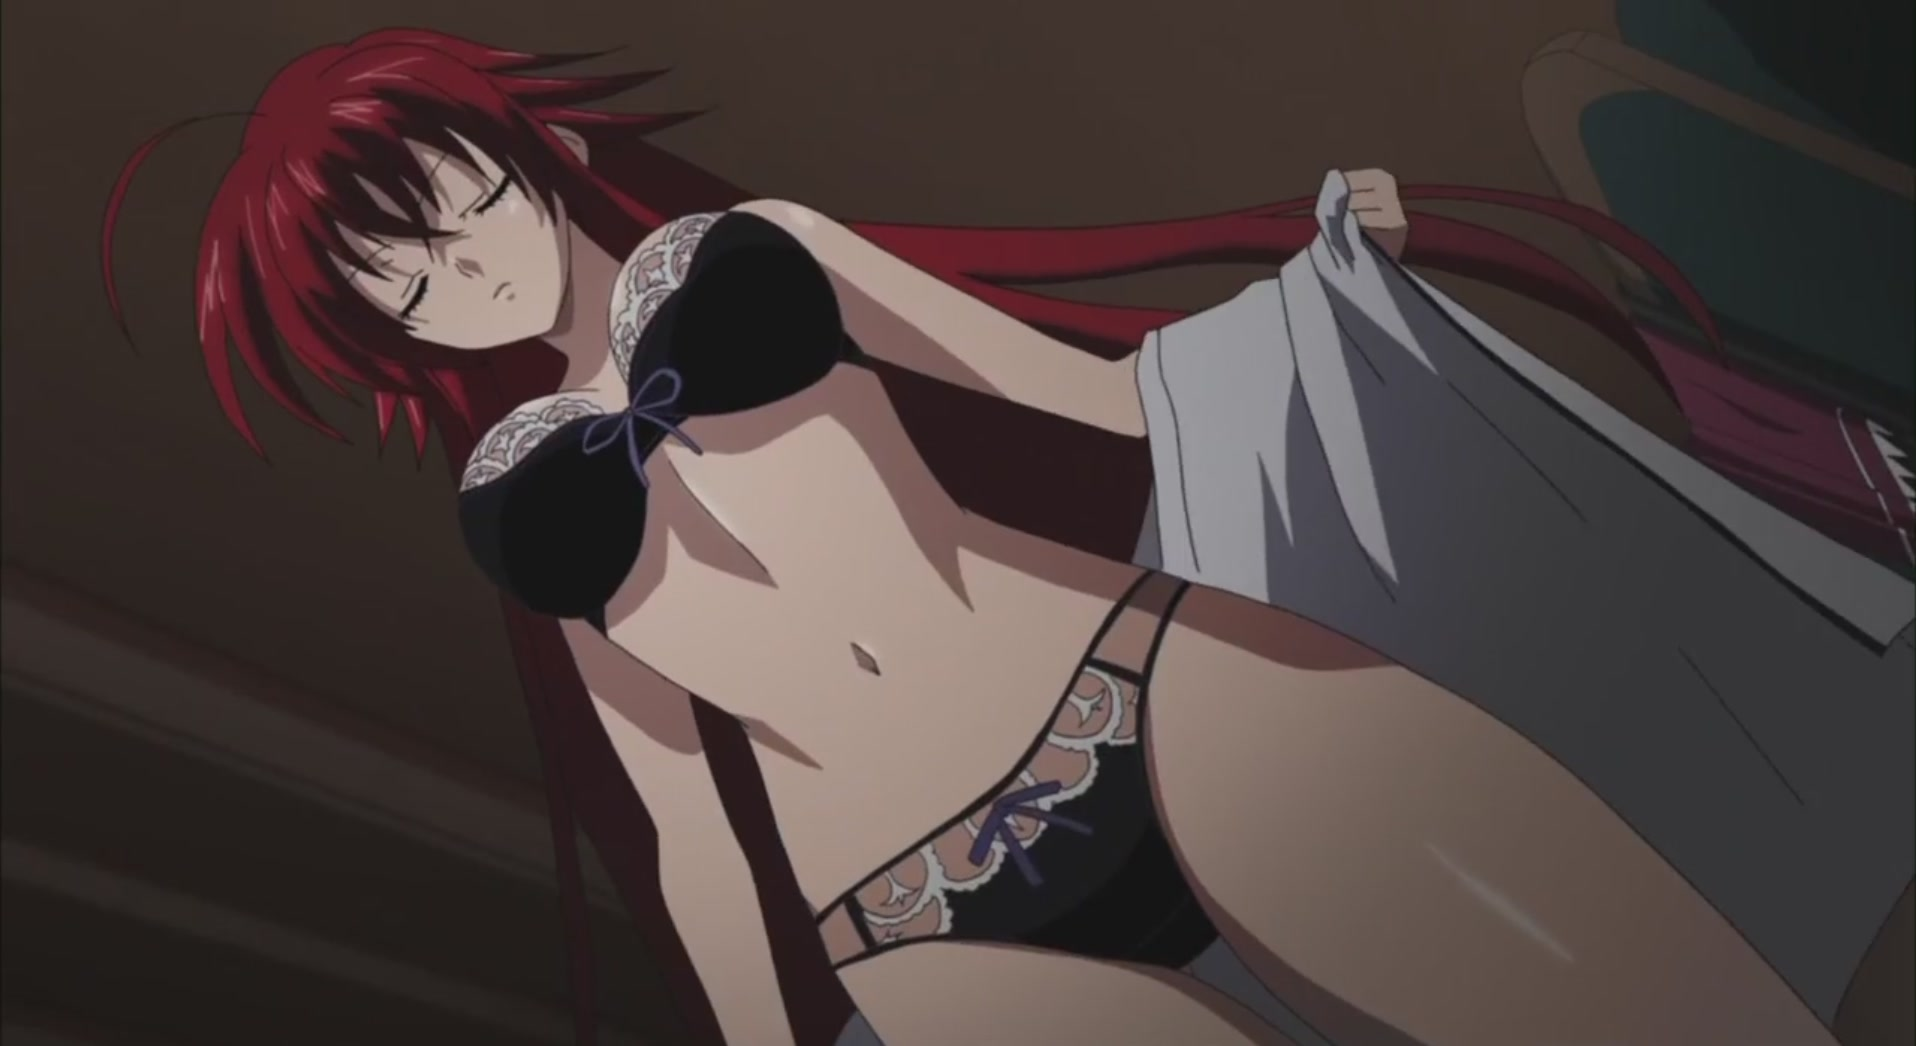 highschool dxd rias gremory